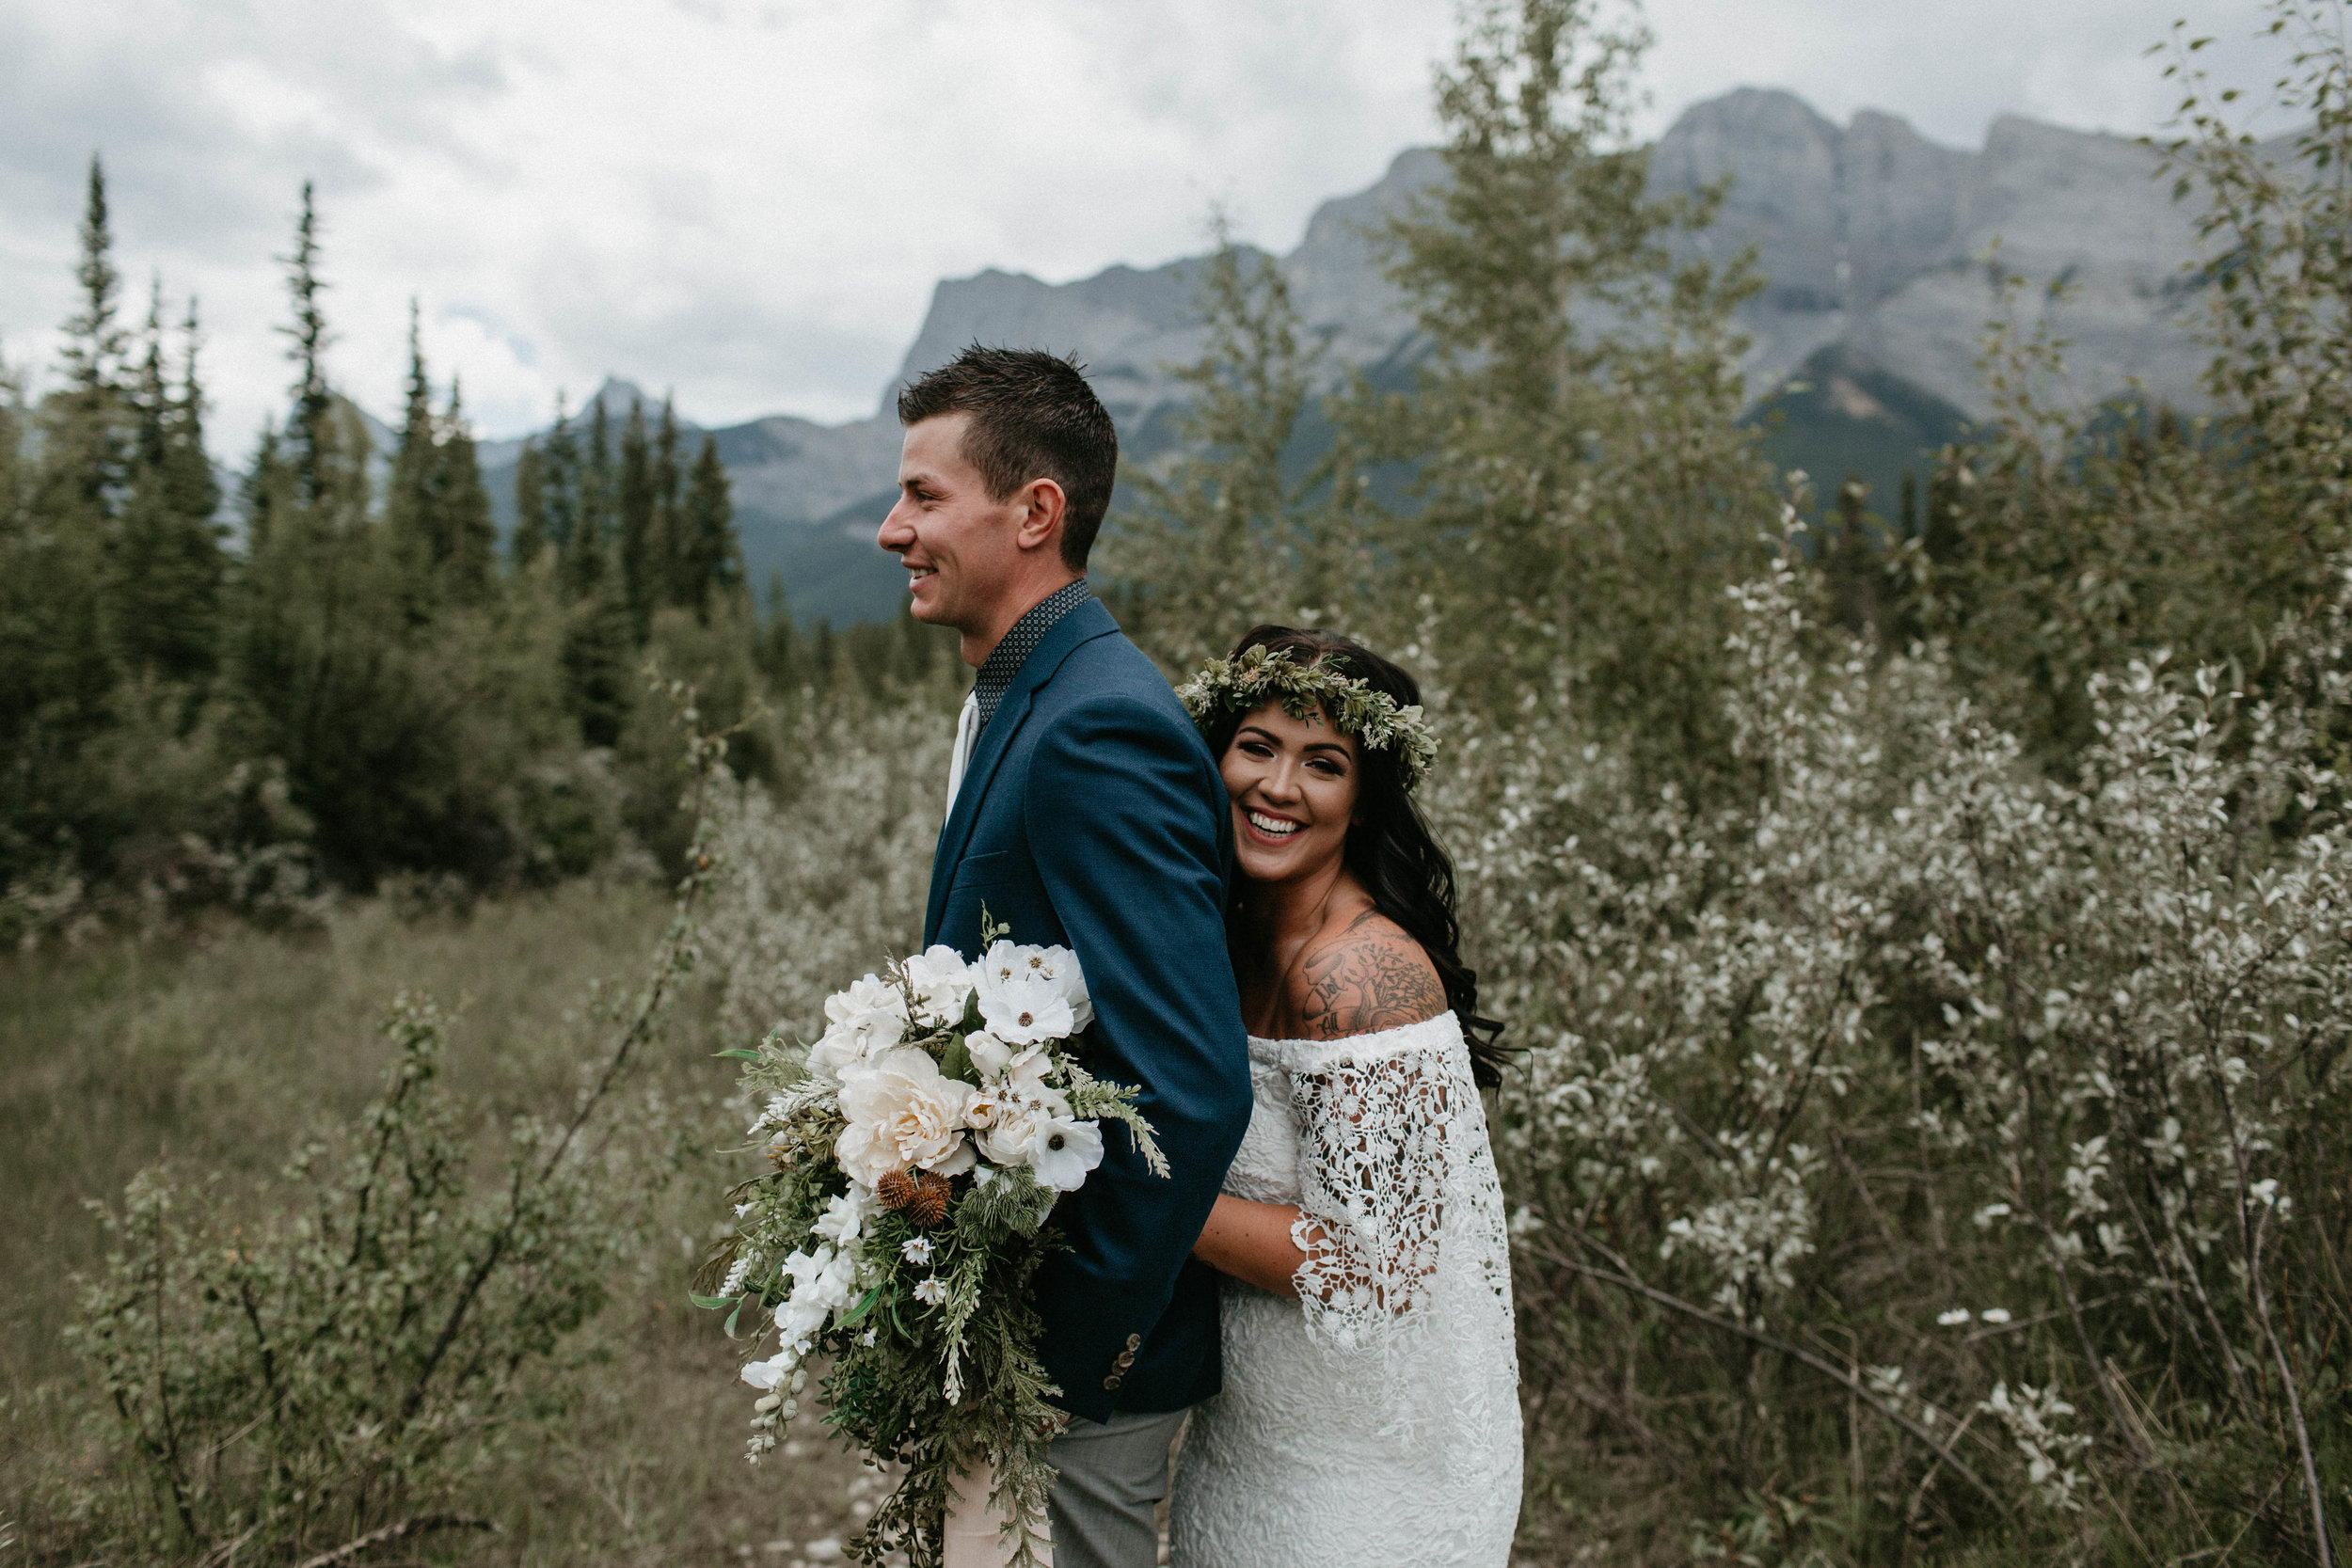 bride and groom portraits - Canmore, Alberta wedding | Michelle Larmand Photography